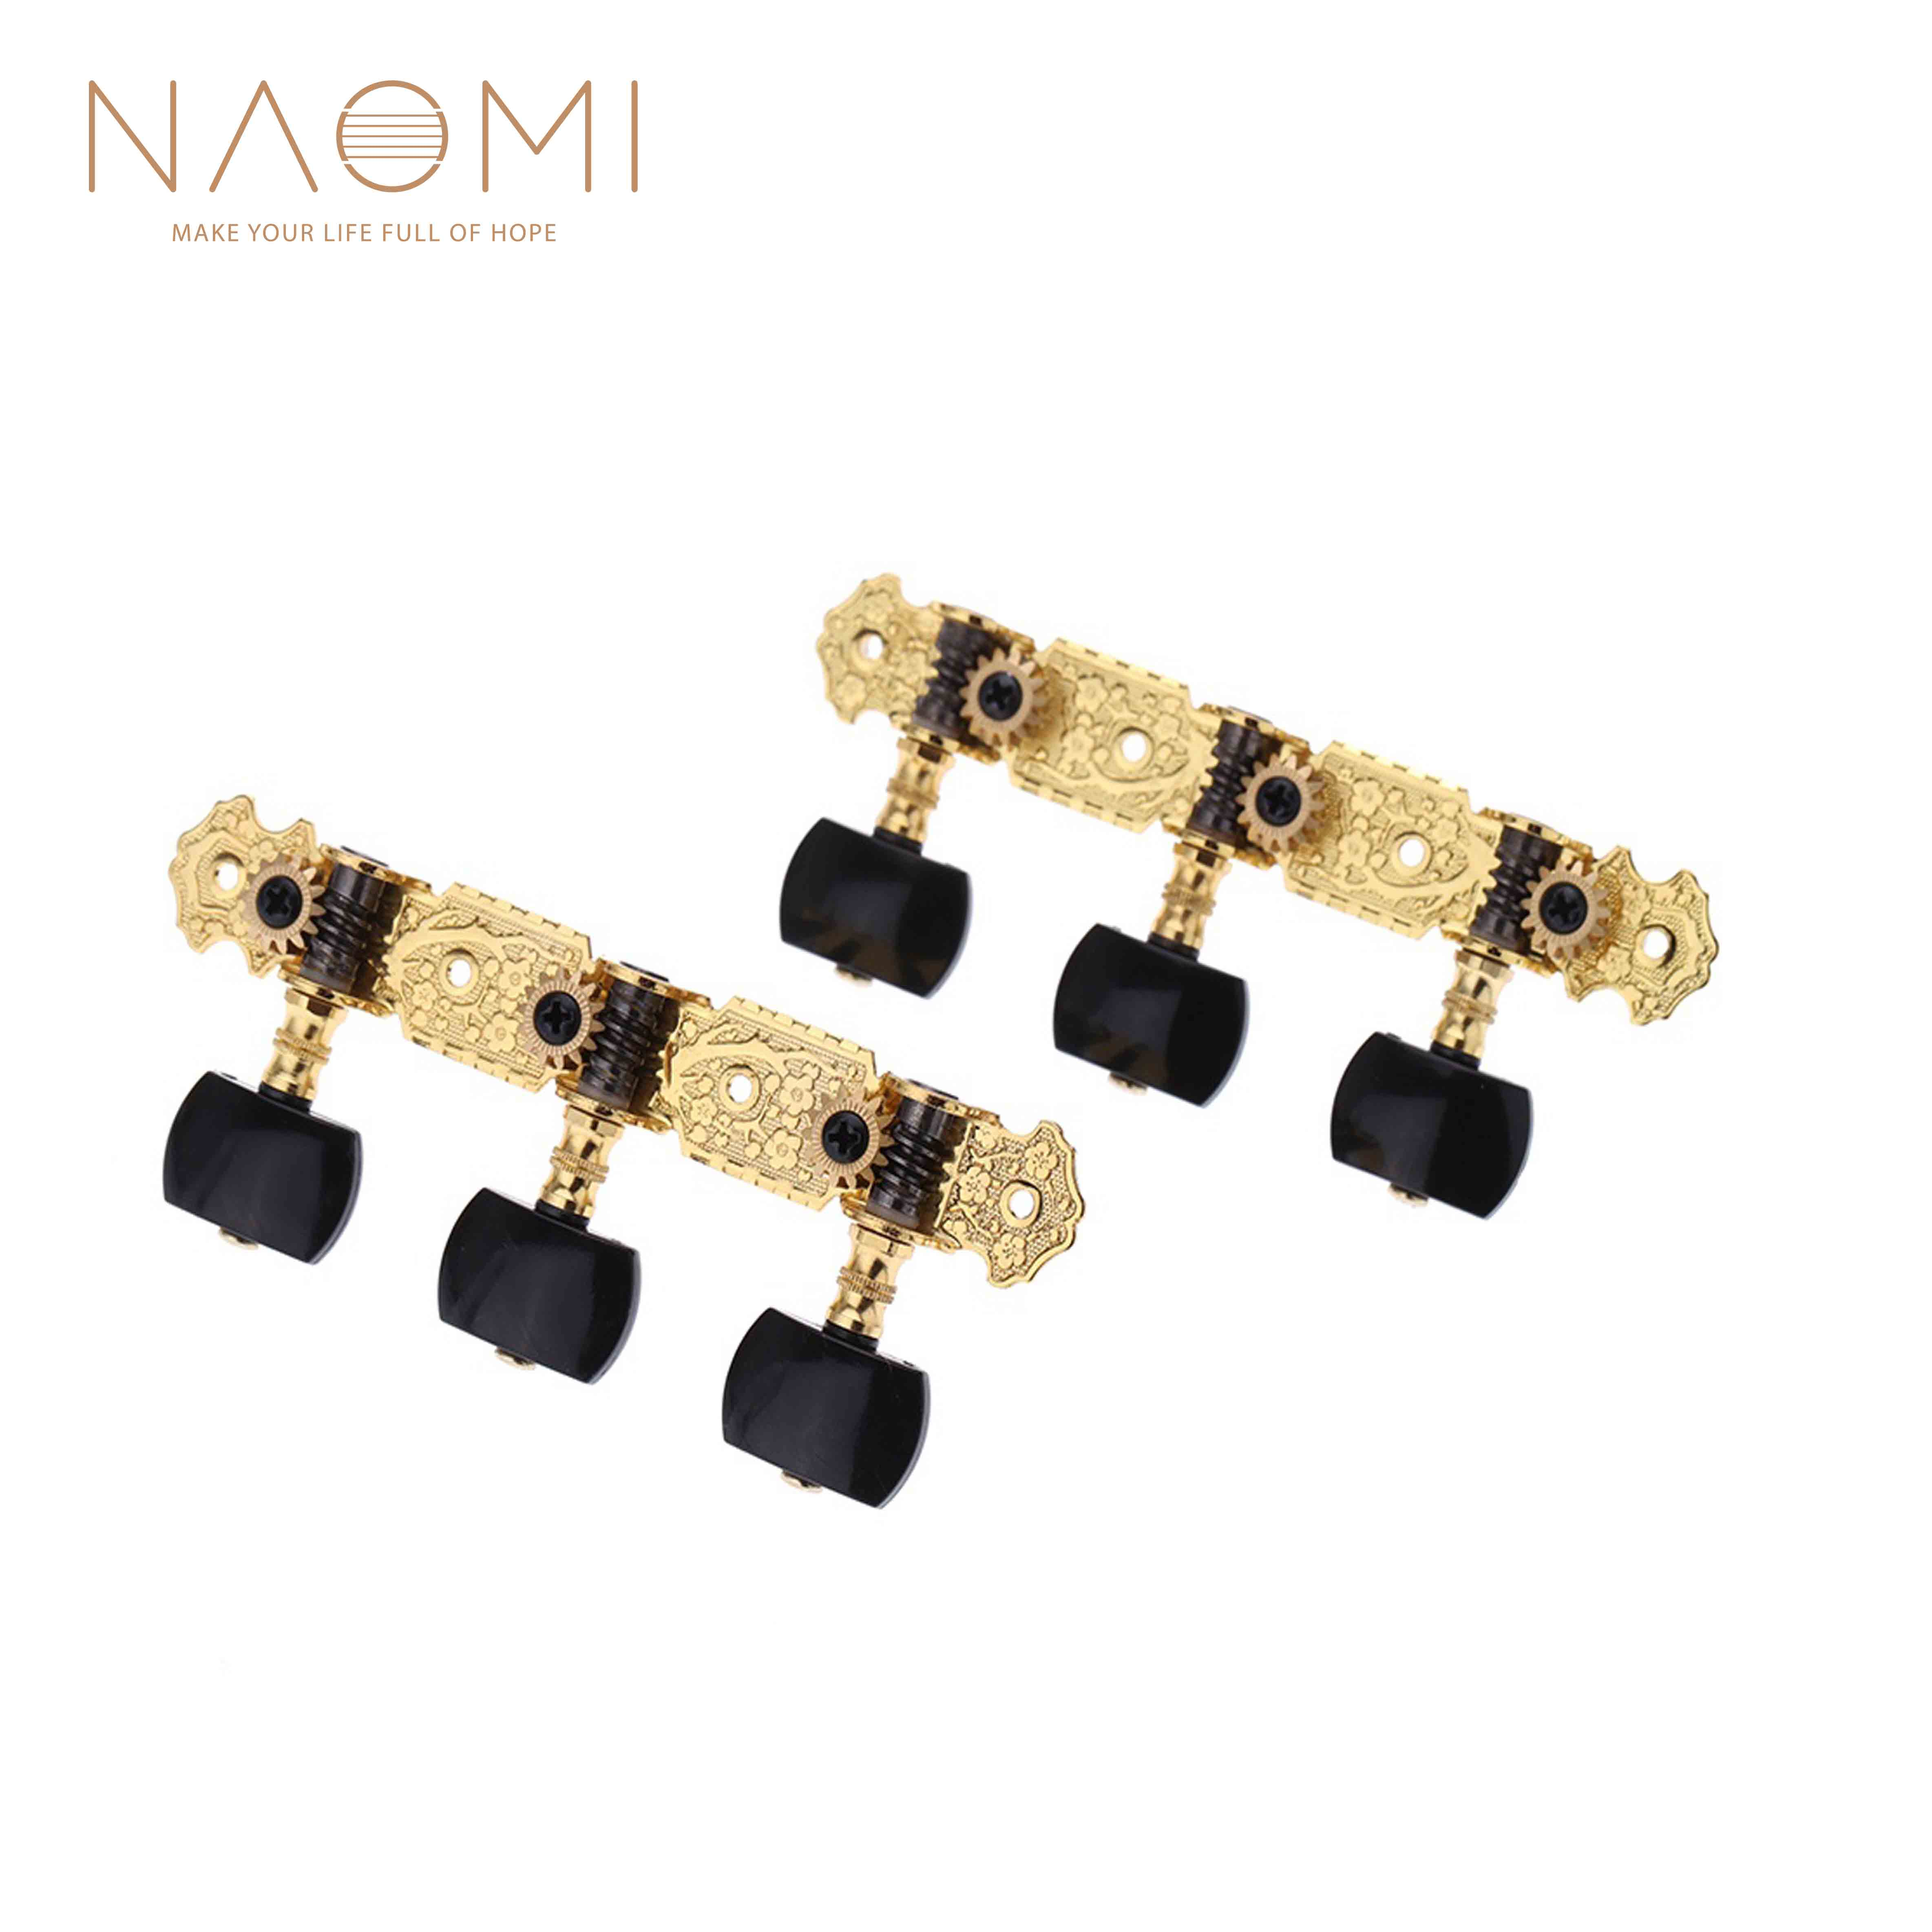 naomi alice plated guitar tuning pegs gold plated durable guitar machine heads classical guitar. Black Bedroom Furniture Sets. Home Design Ideas